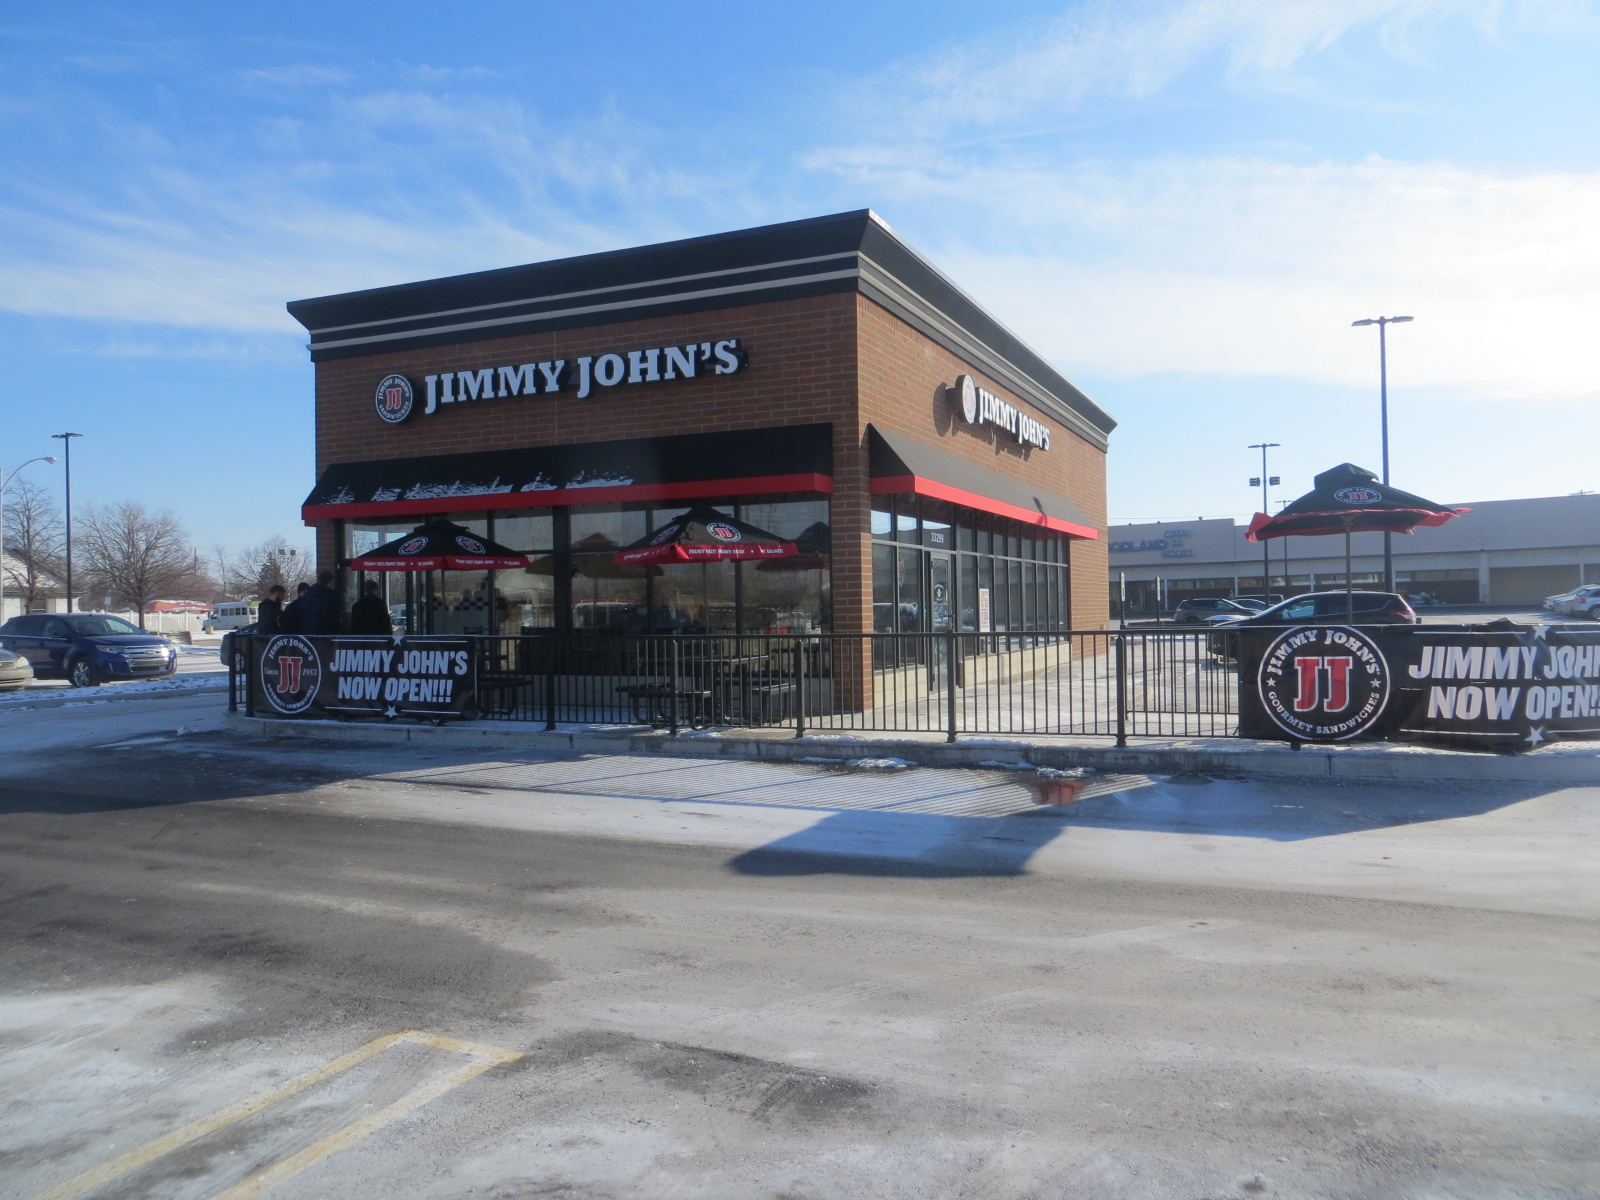 Jimmy Johns Sandwiches Constructed A Free Standing Location With Drive Through Service On Plymouth Road Near Farmington The Shop Will Relocate From